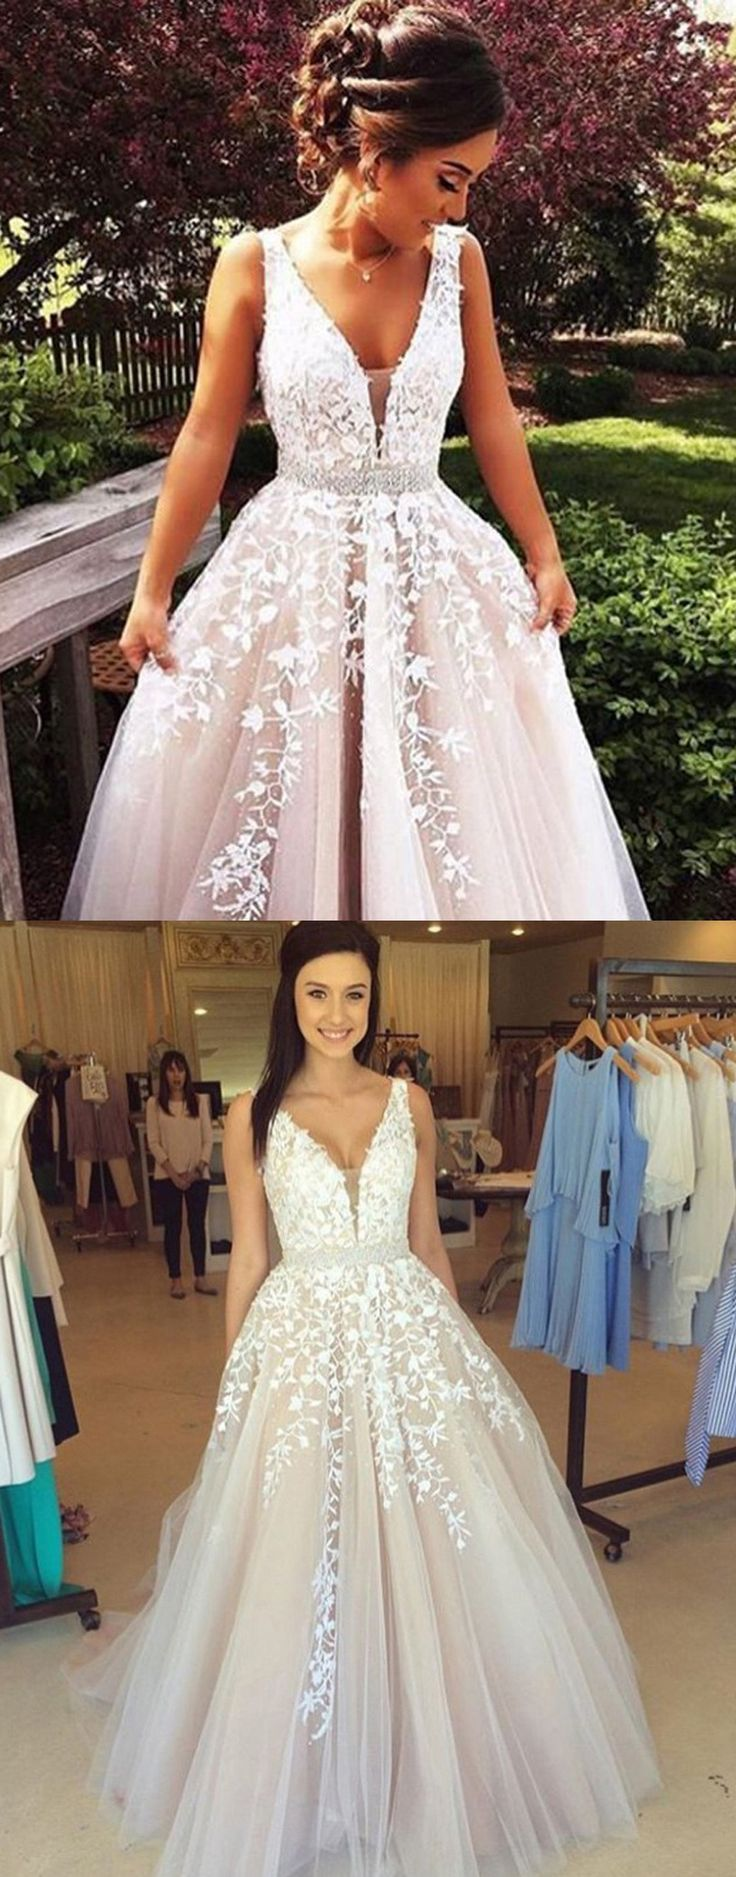 25+ best ideas about Unique formal dresses on Pinterest ...